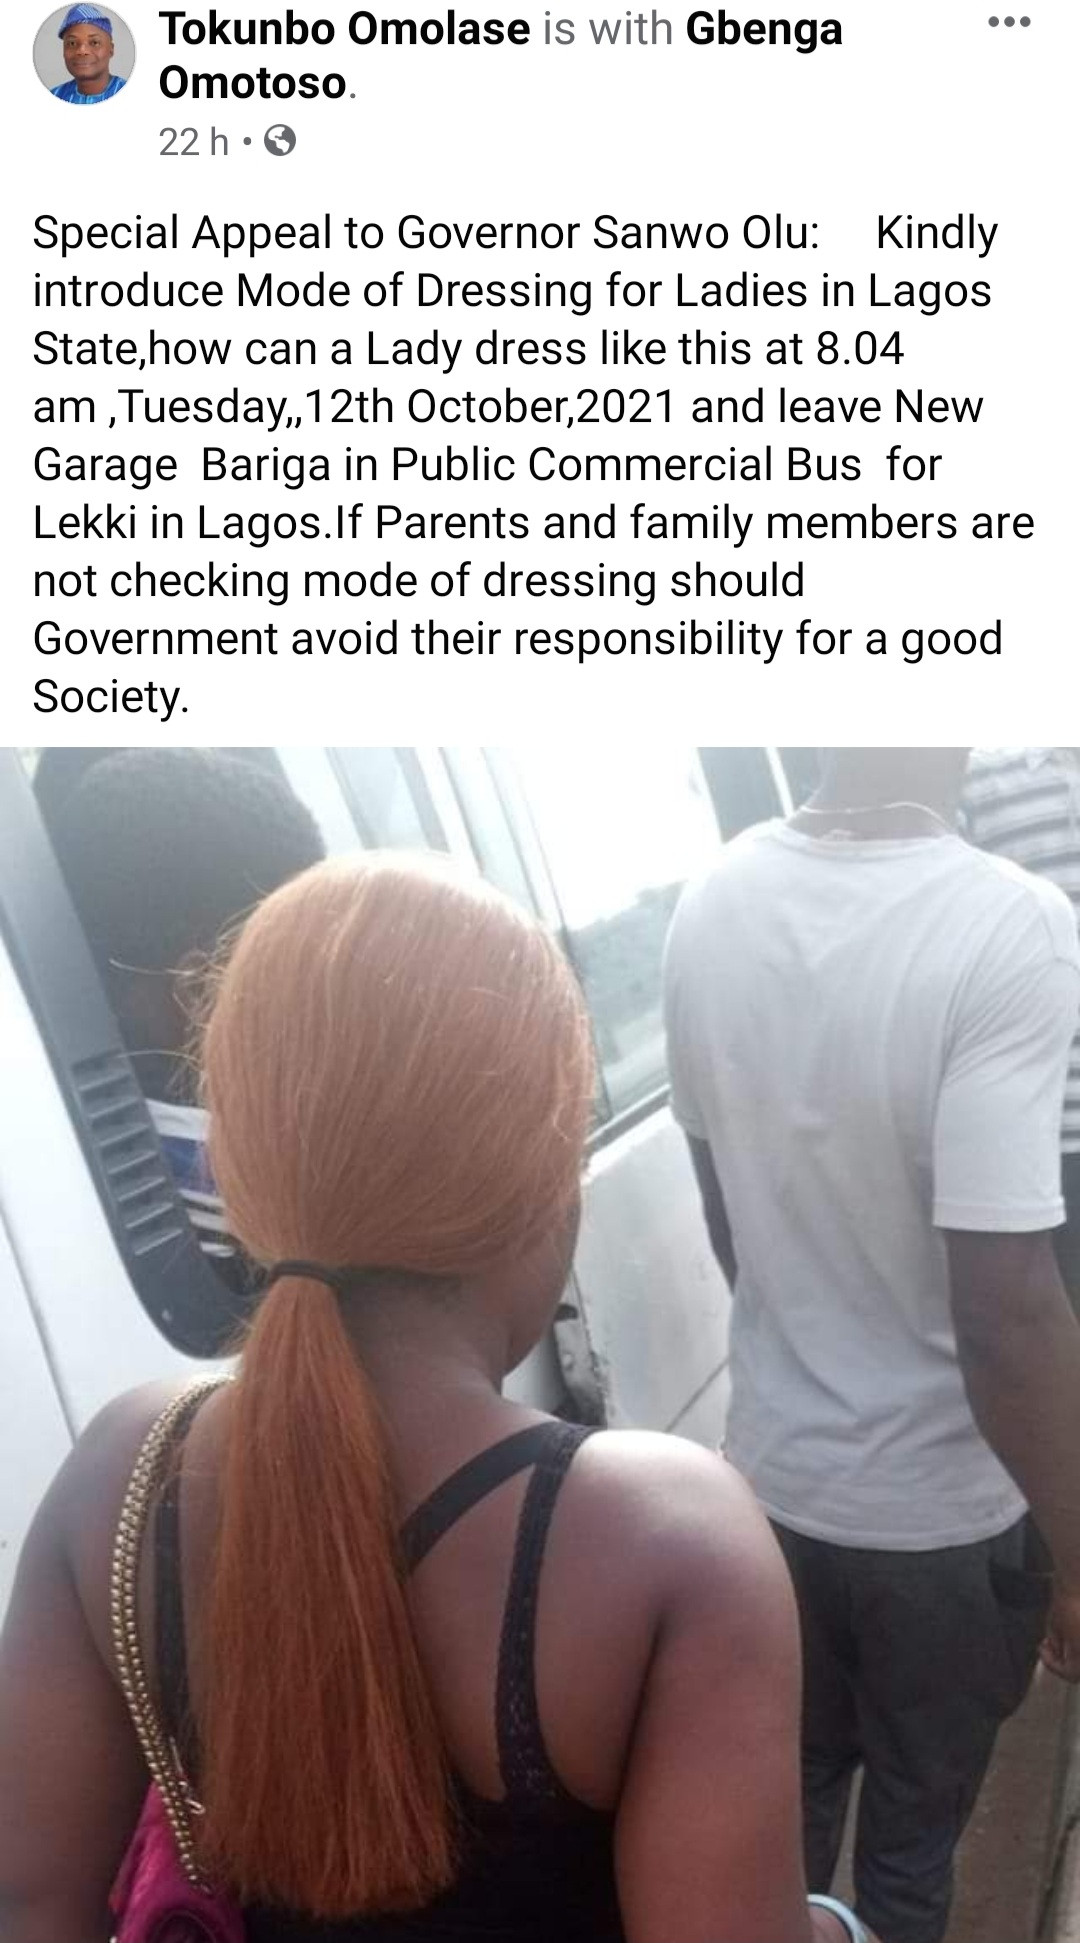 Man dragged for filth after taking photo of a lady and calling on the government to introduce mode of dressing for women